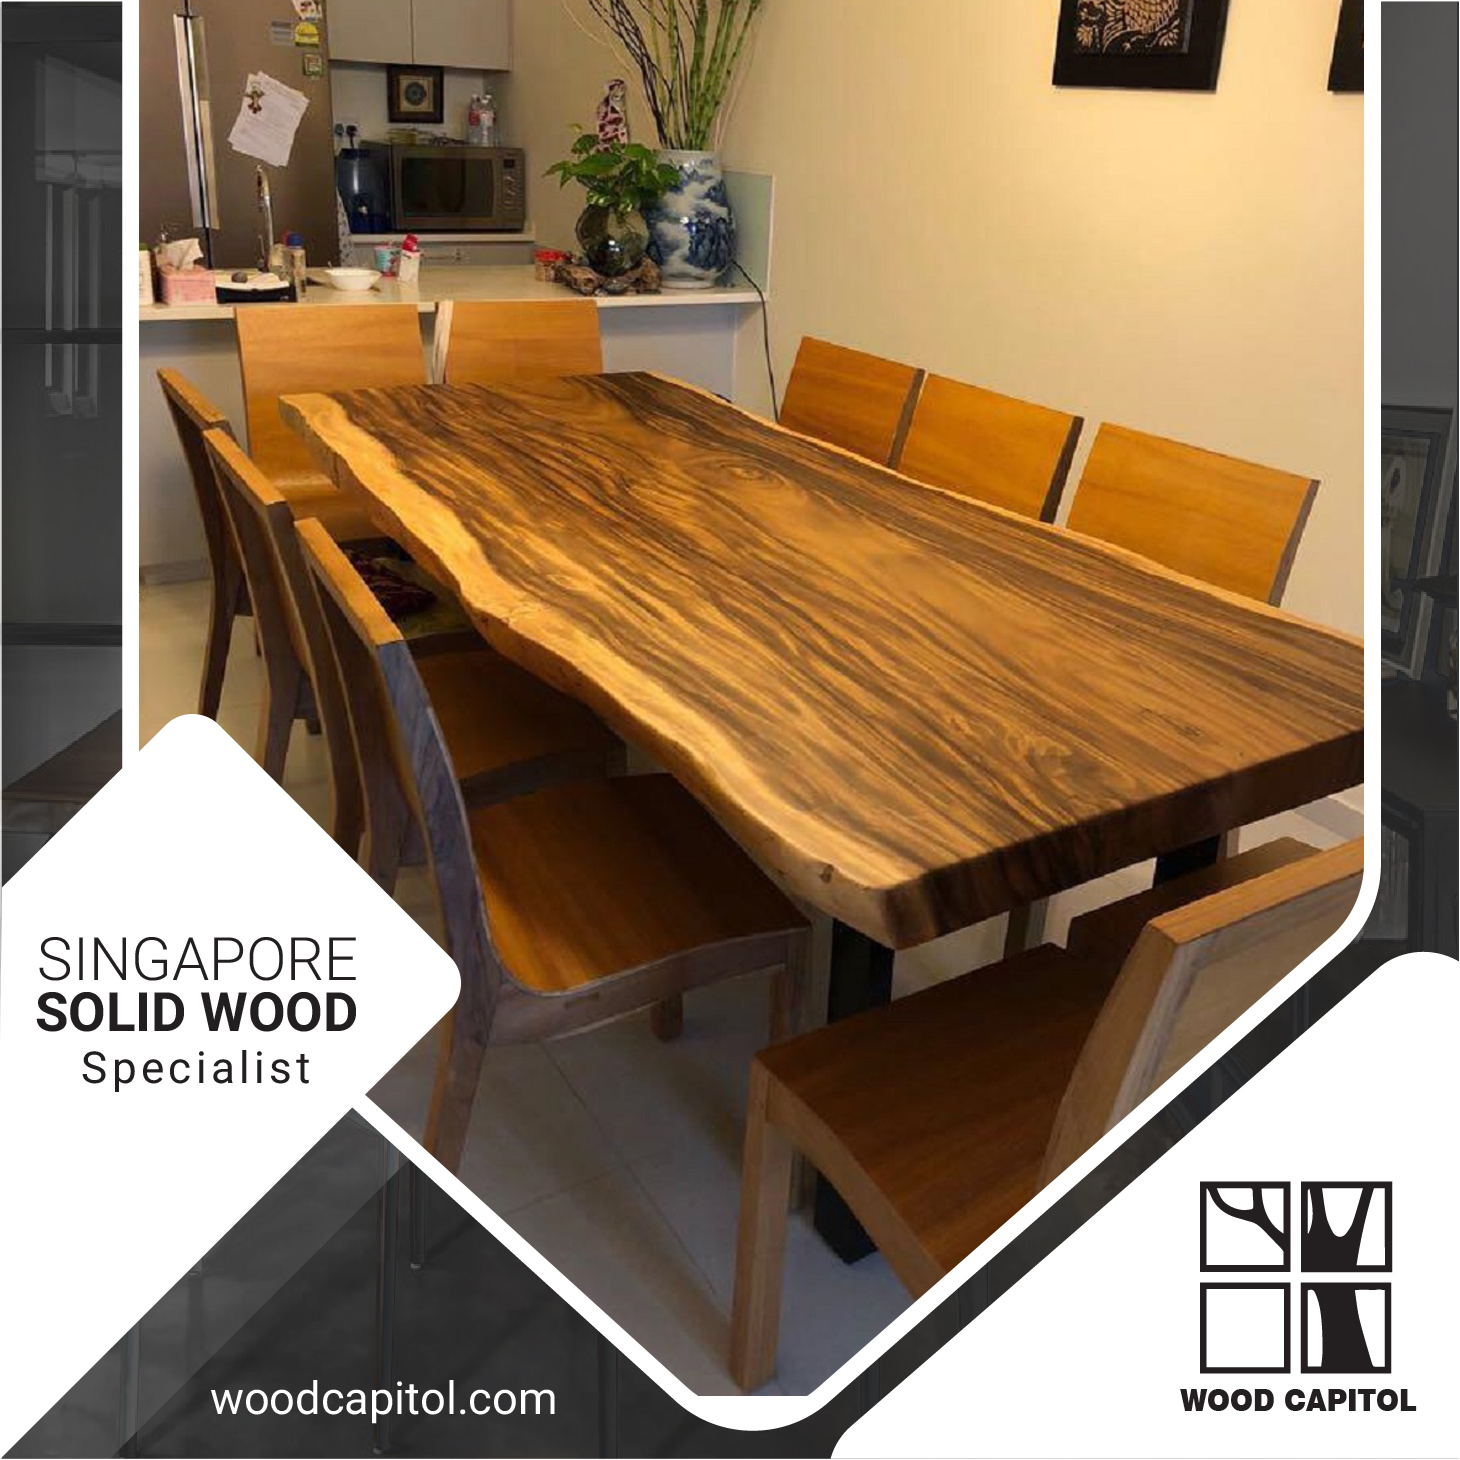 Wood Capitol Natural Wood Dining Table Lazada Singapore